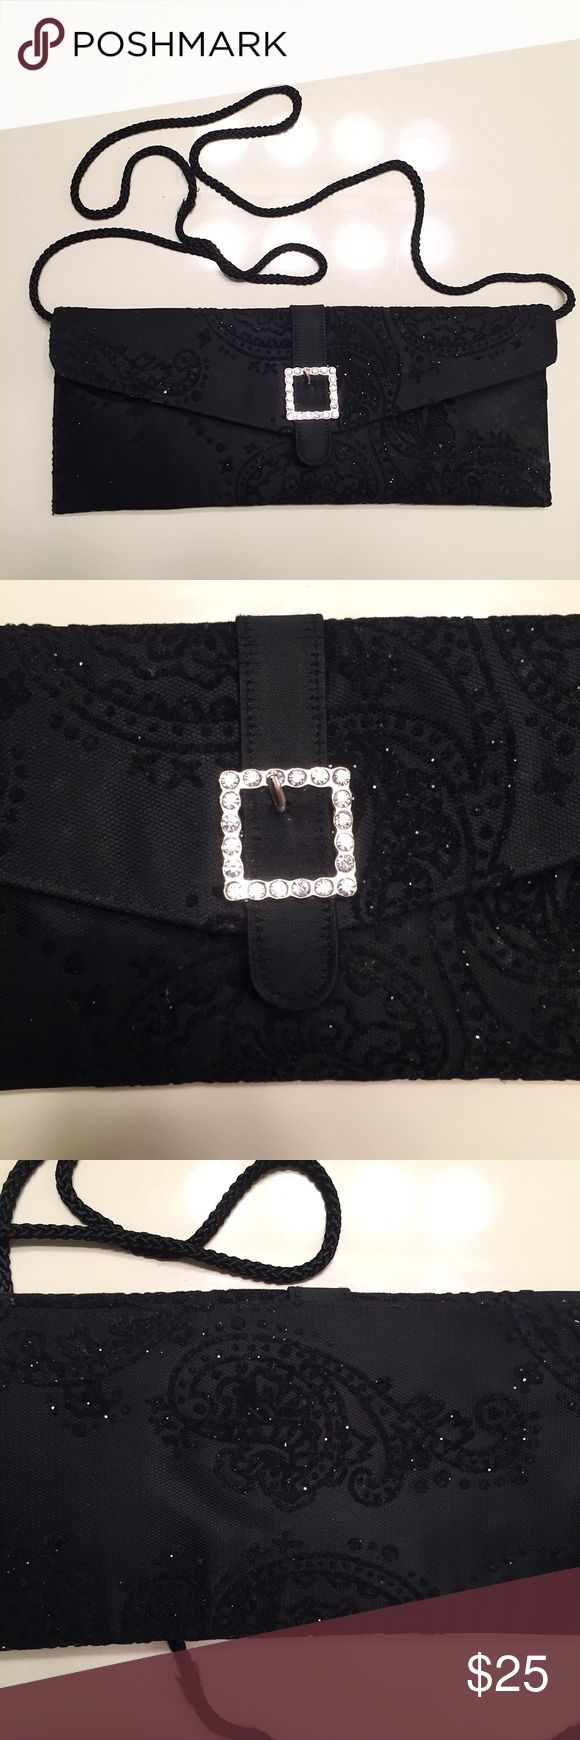 Black sparkly clutch with mirror Black slightly sparkly clutch purse wth attached mirror inside (as shown in pics). It has been used a few times but is in good condition. Great for a fancy occasion like a nice dinner or prom dance. Metaphor Bags Crossbody Bags